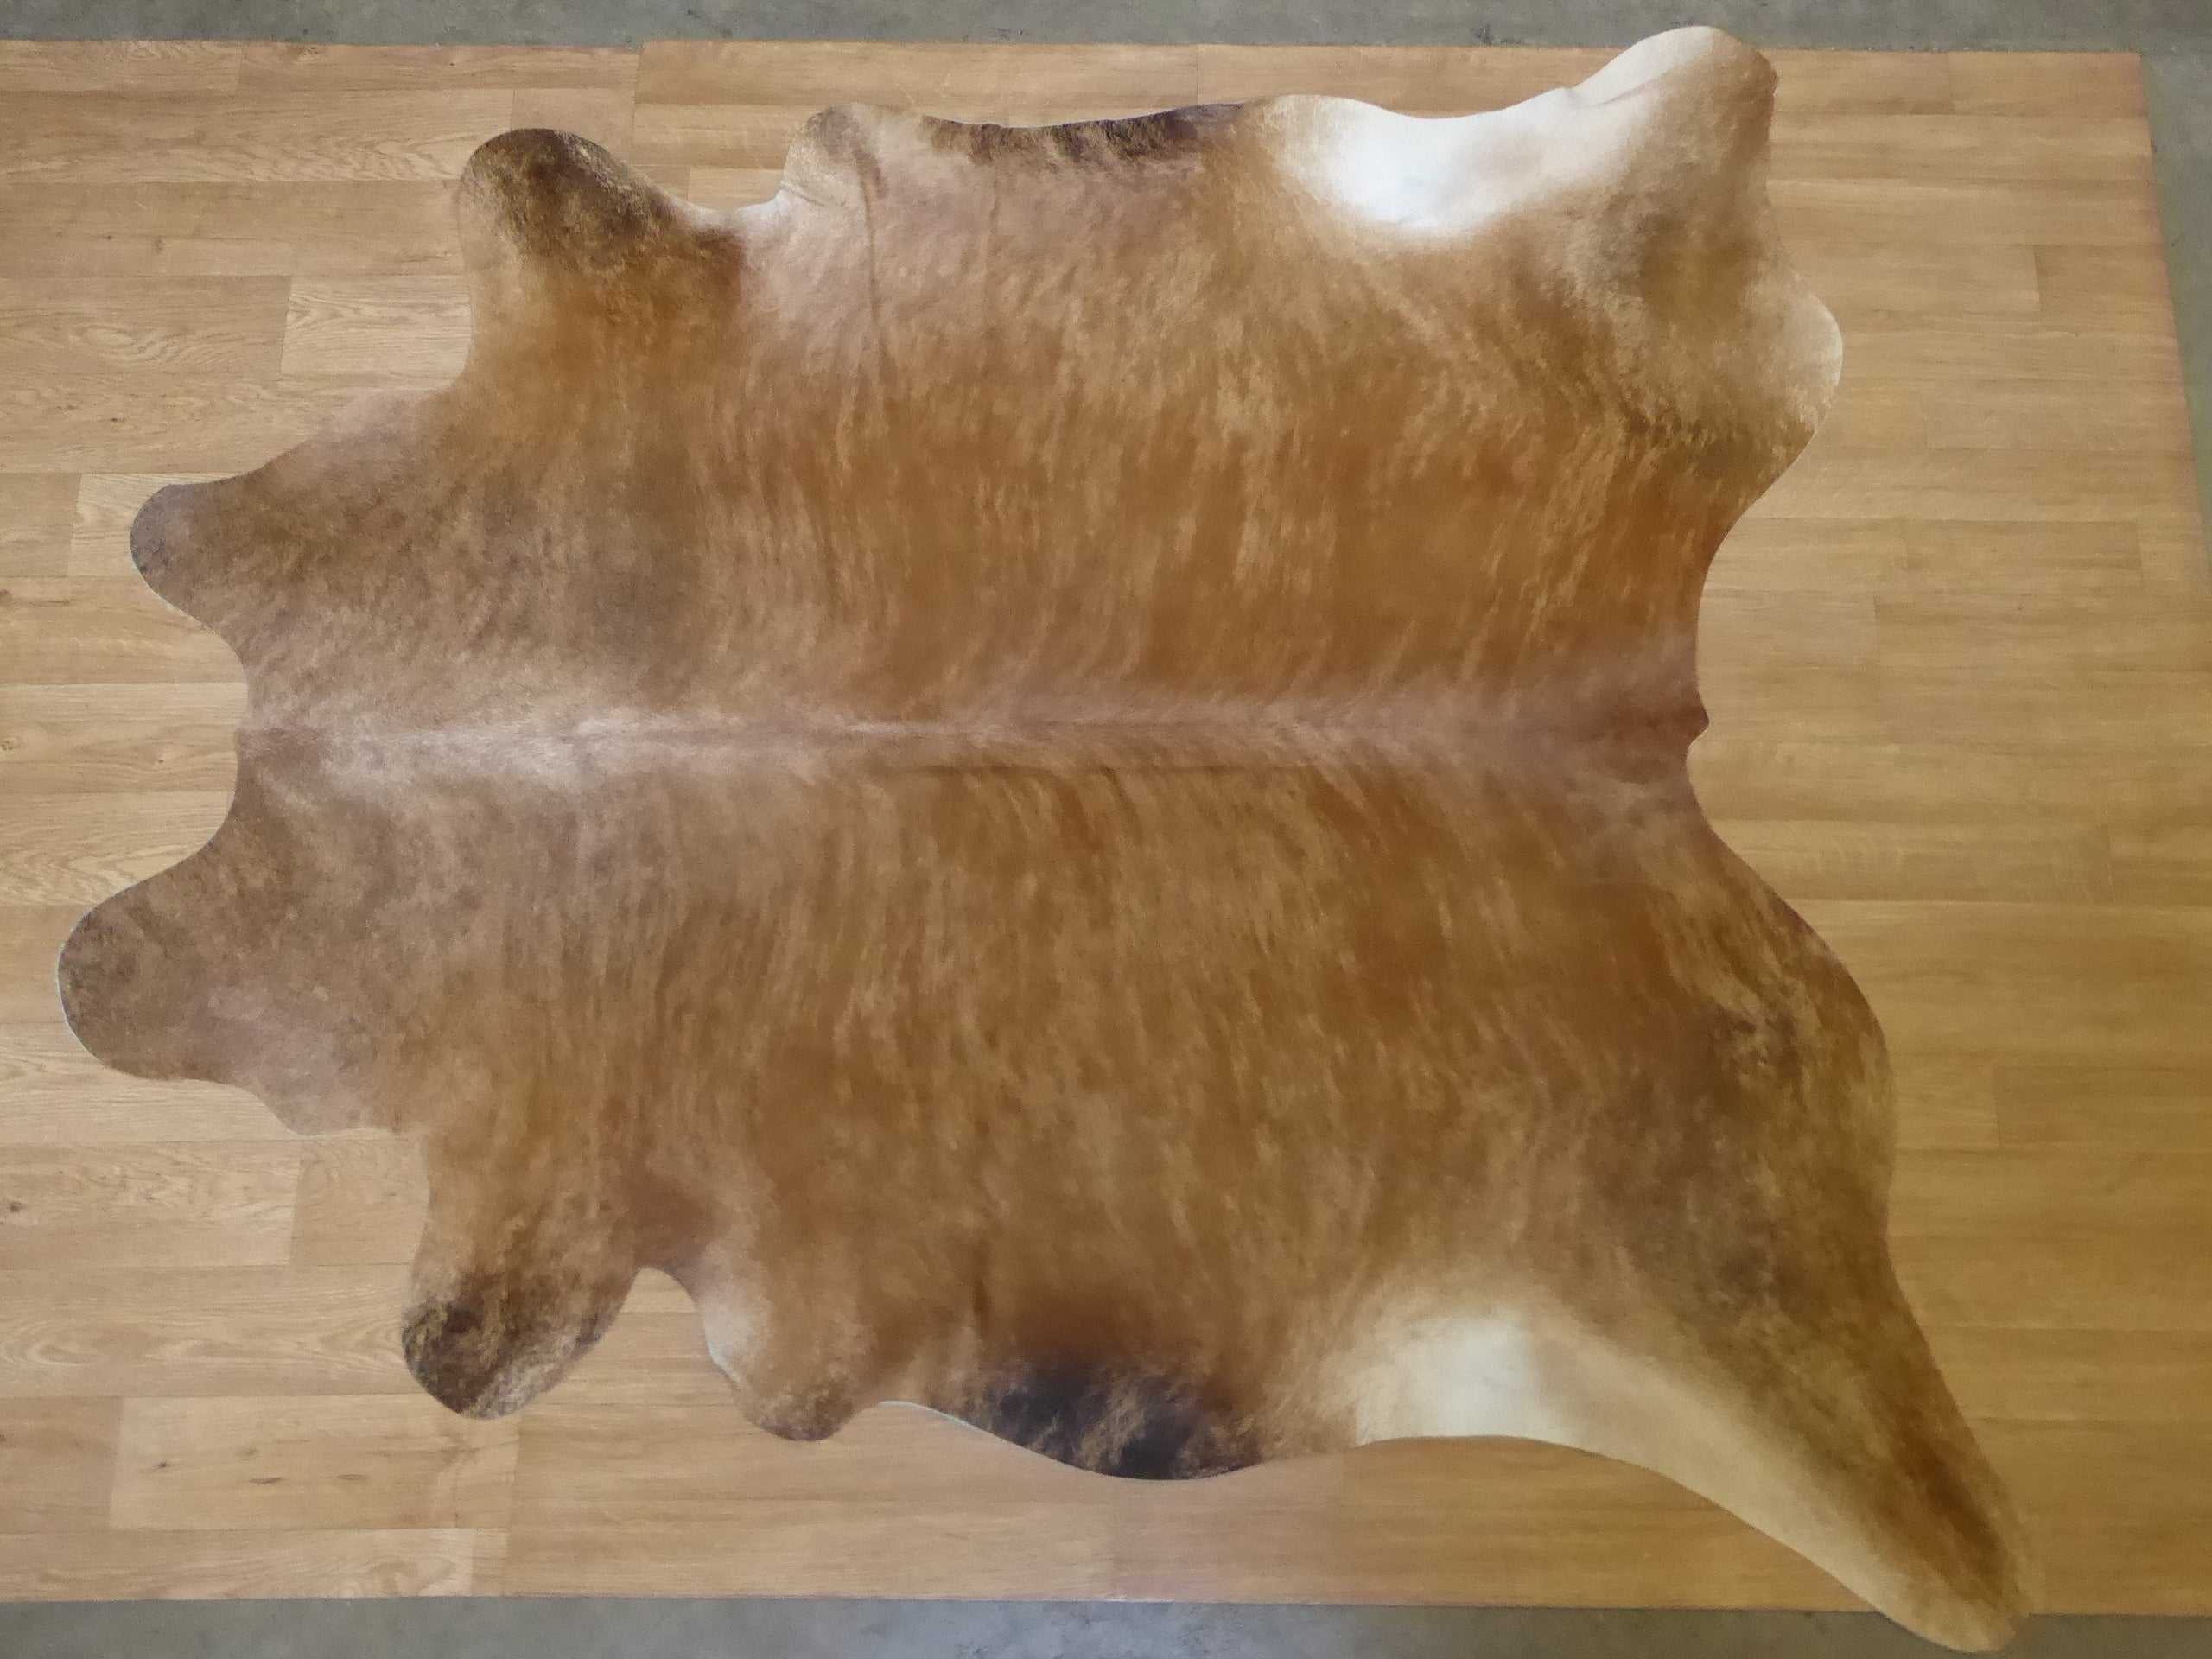 Natural Hair On Cow Hide : This Hide Is perfect For Wall Hanging, Leather Rugs, Leather Bags & Leather Accessories (pic code 1020075)